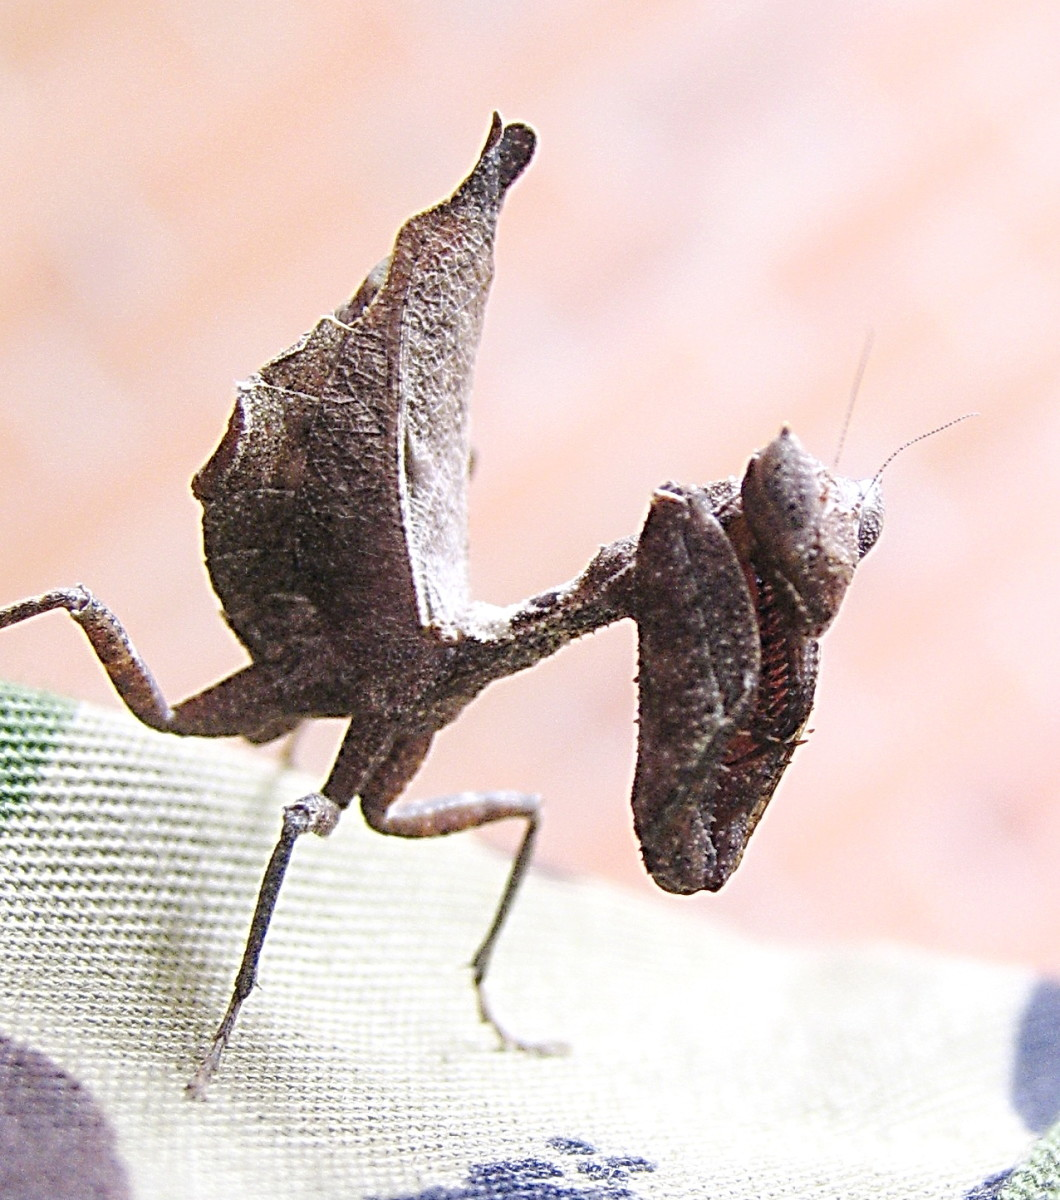 Excellent camouflage of the Praying Mantis